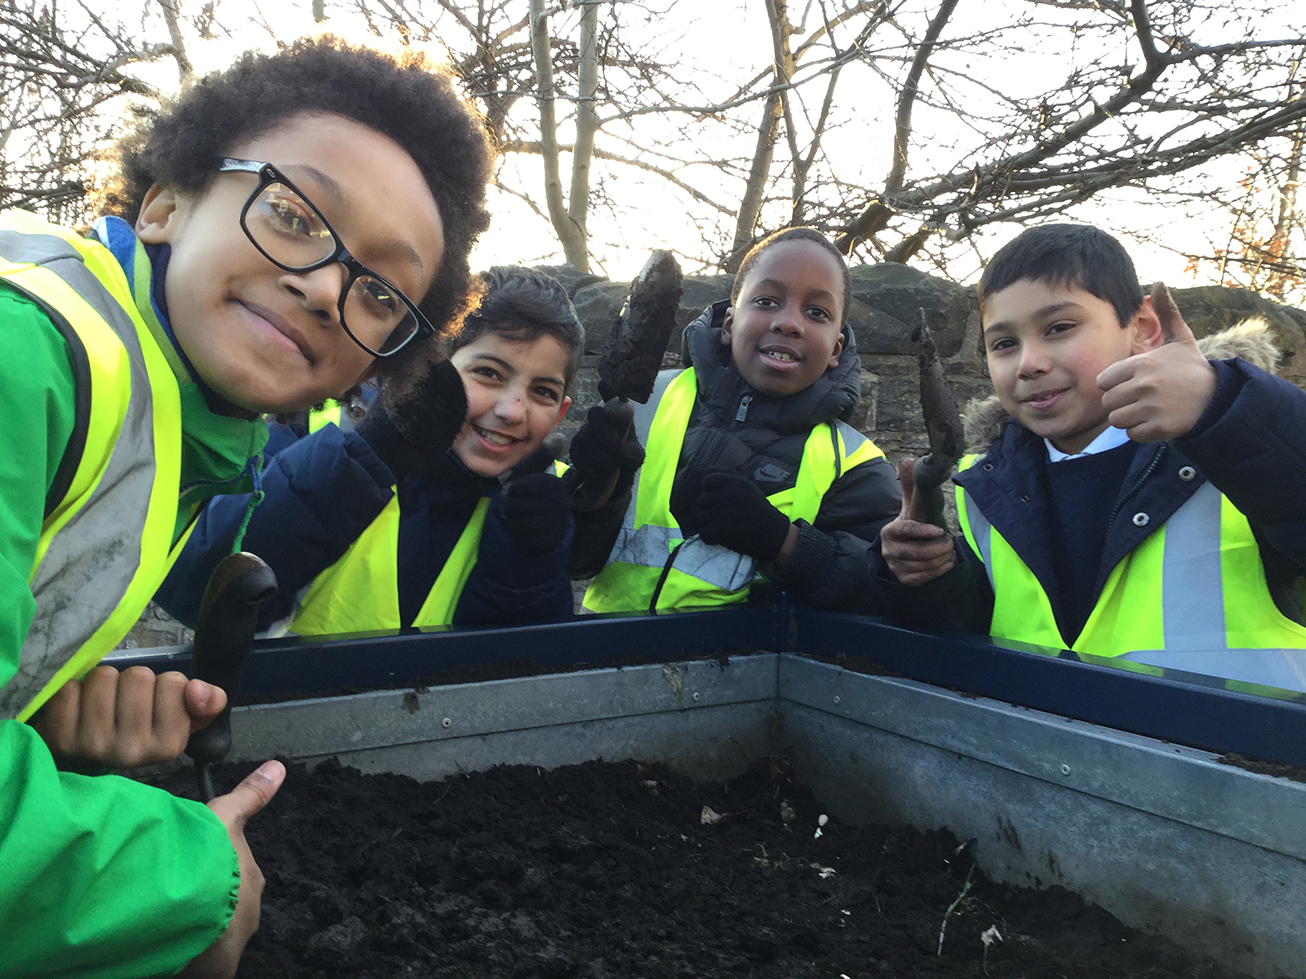 Earth Day 2021: How to Care for the Environment Through Youth-Led Social Action